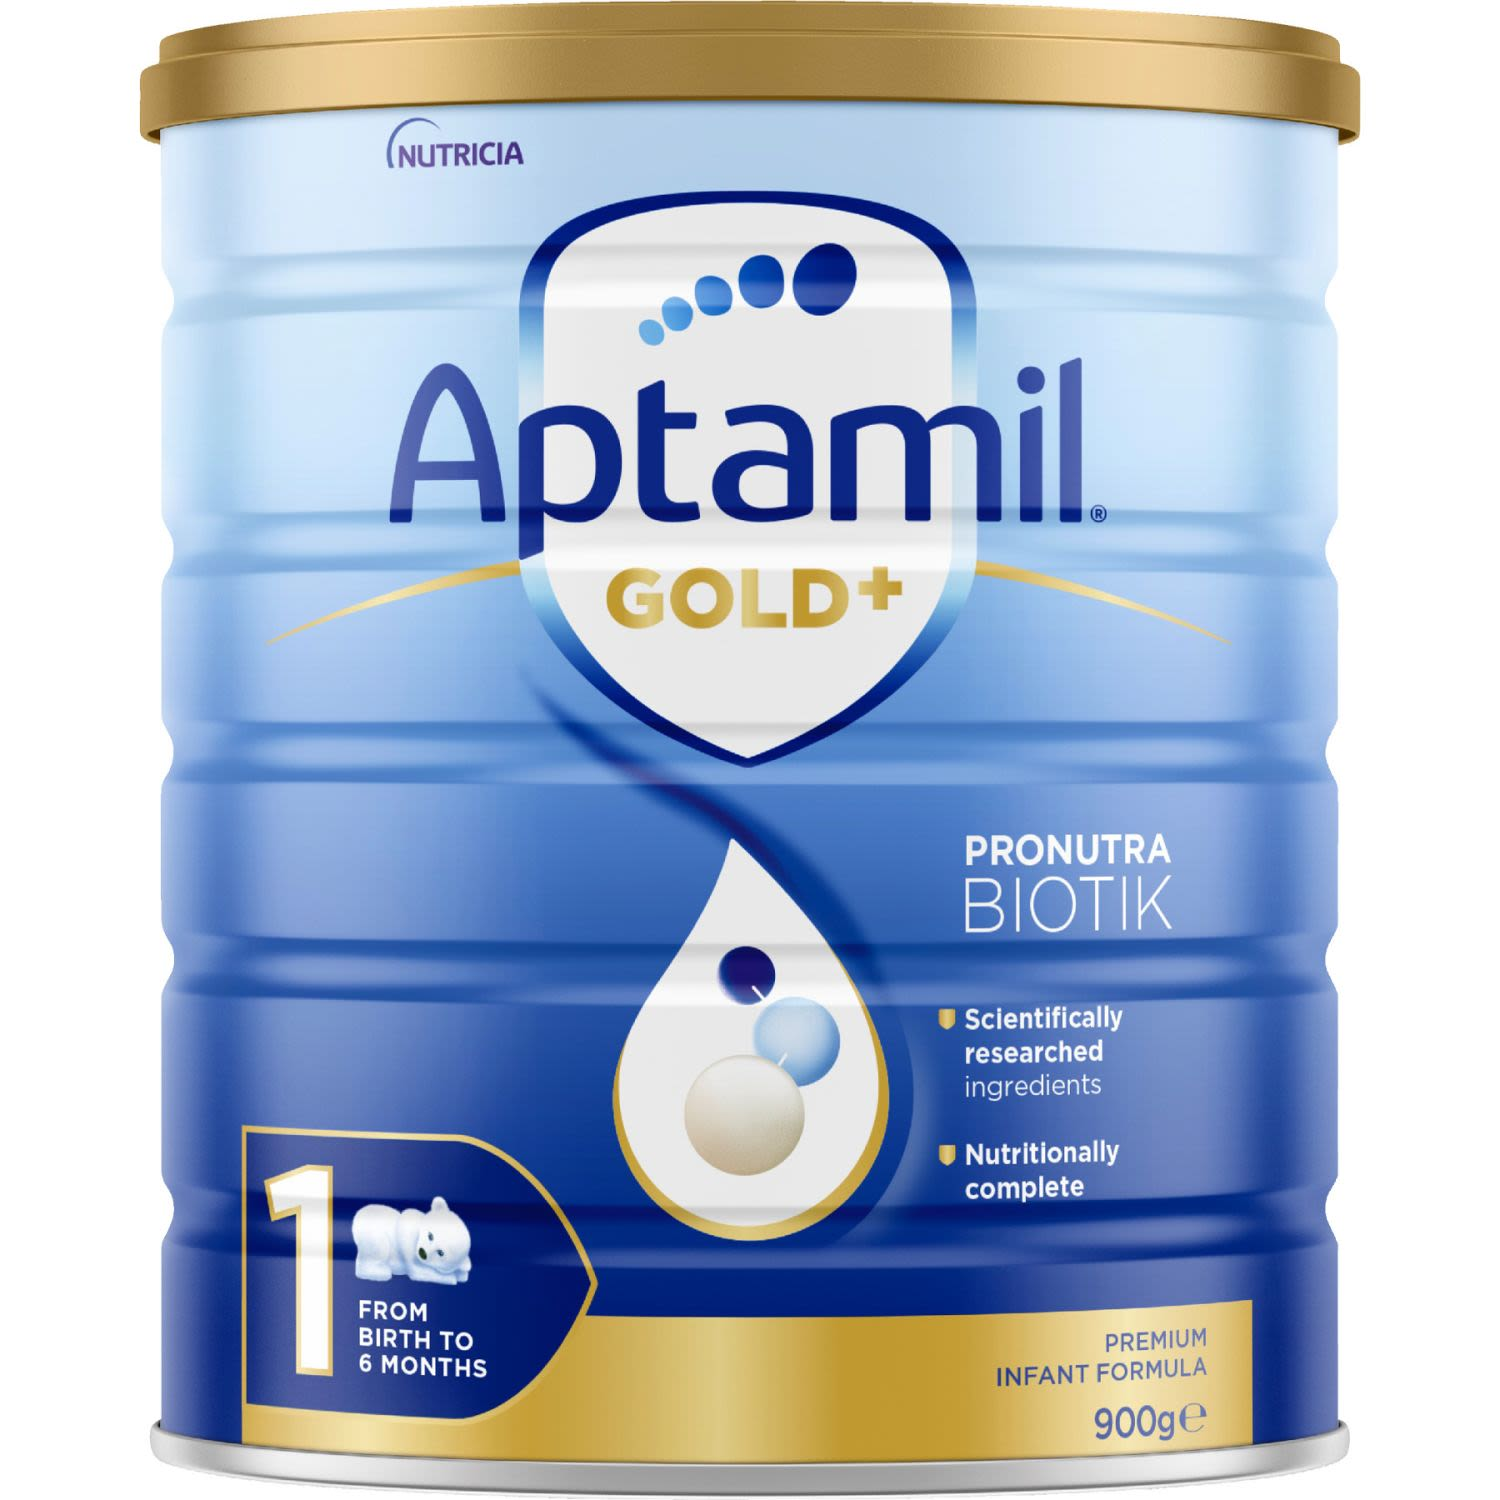 Aptamil Gold+ 1 Baby Infant Formula From Birth to 6 Months, 900 Gram